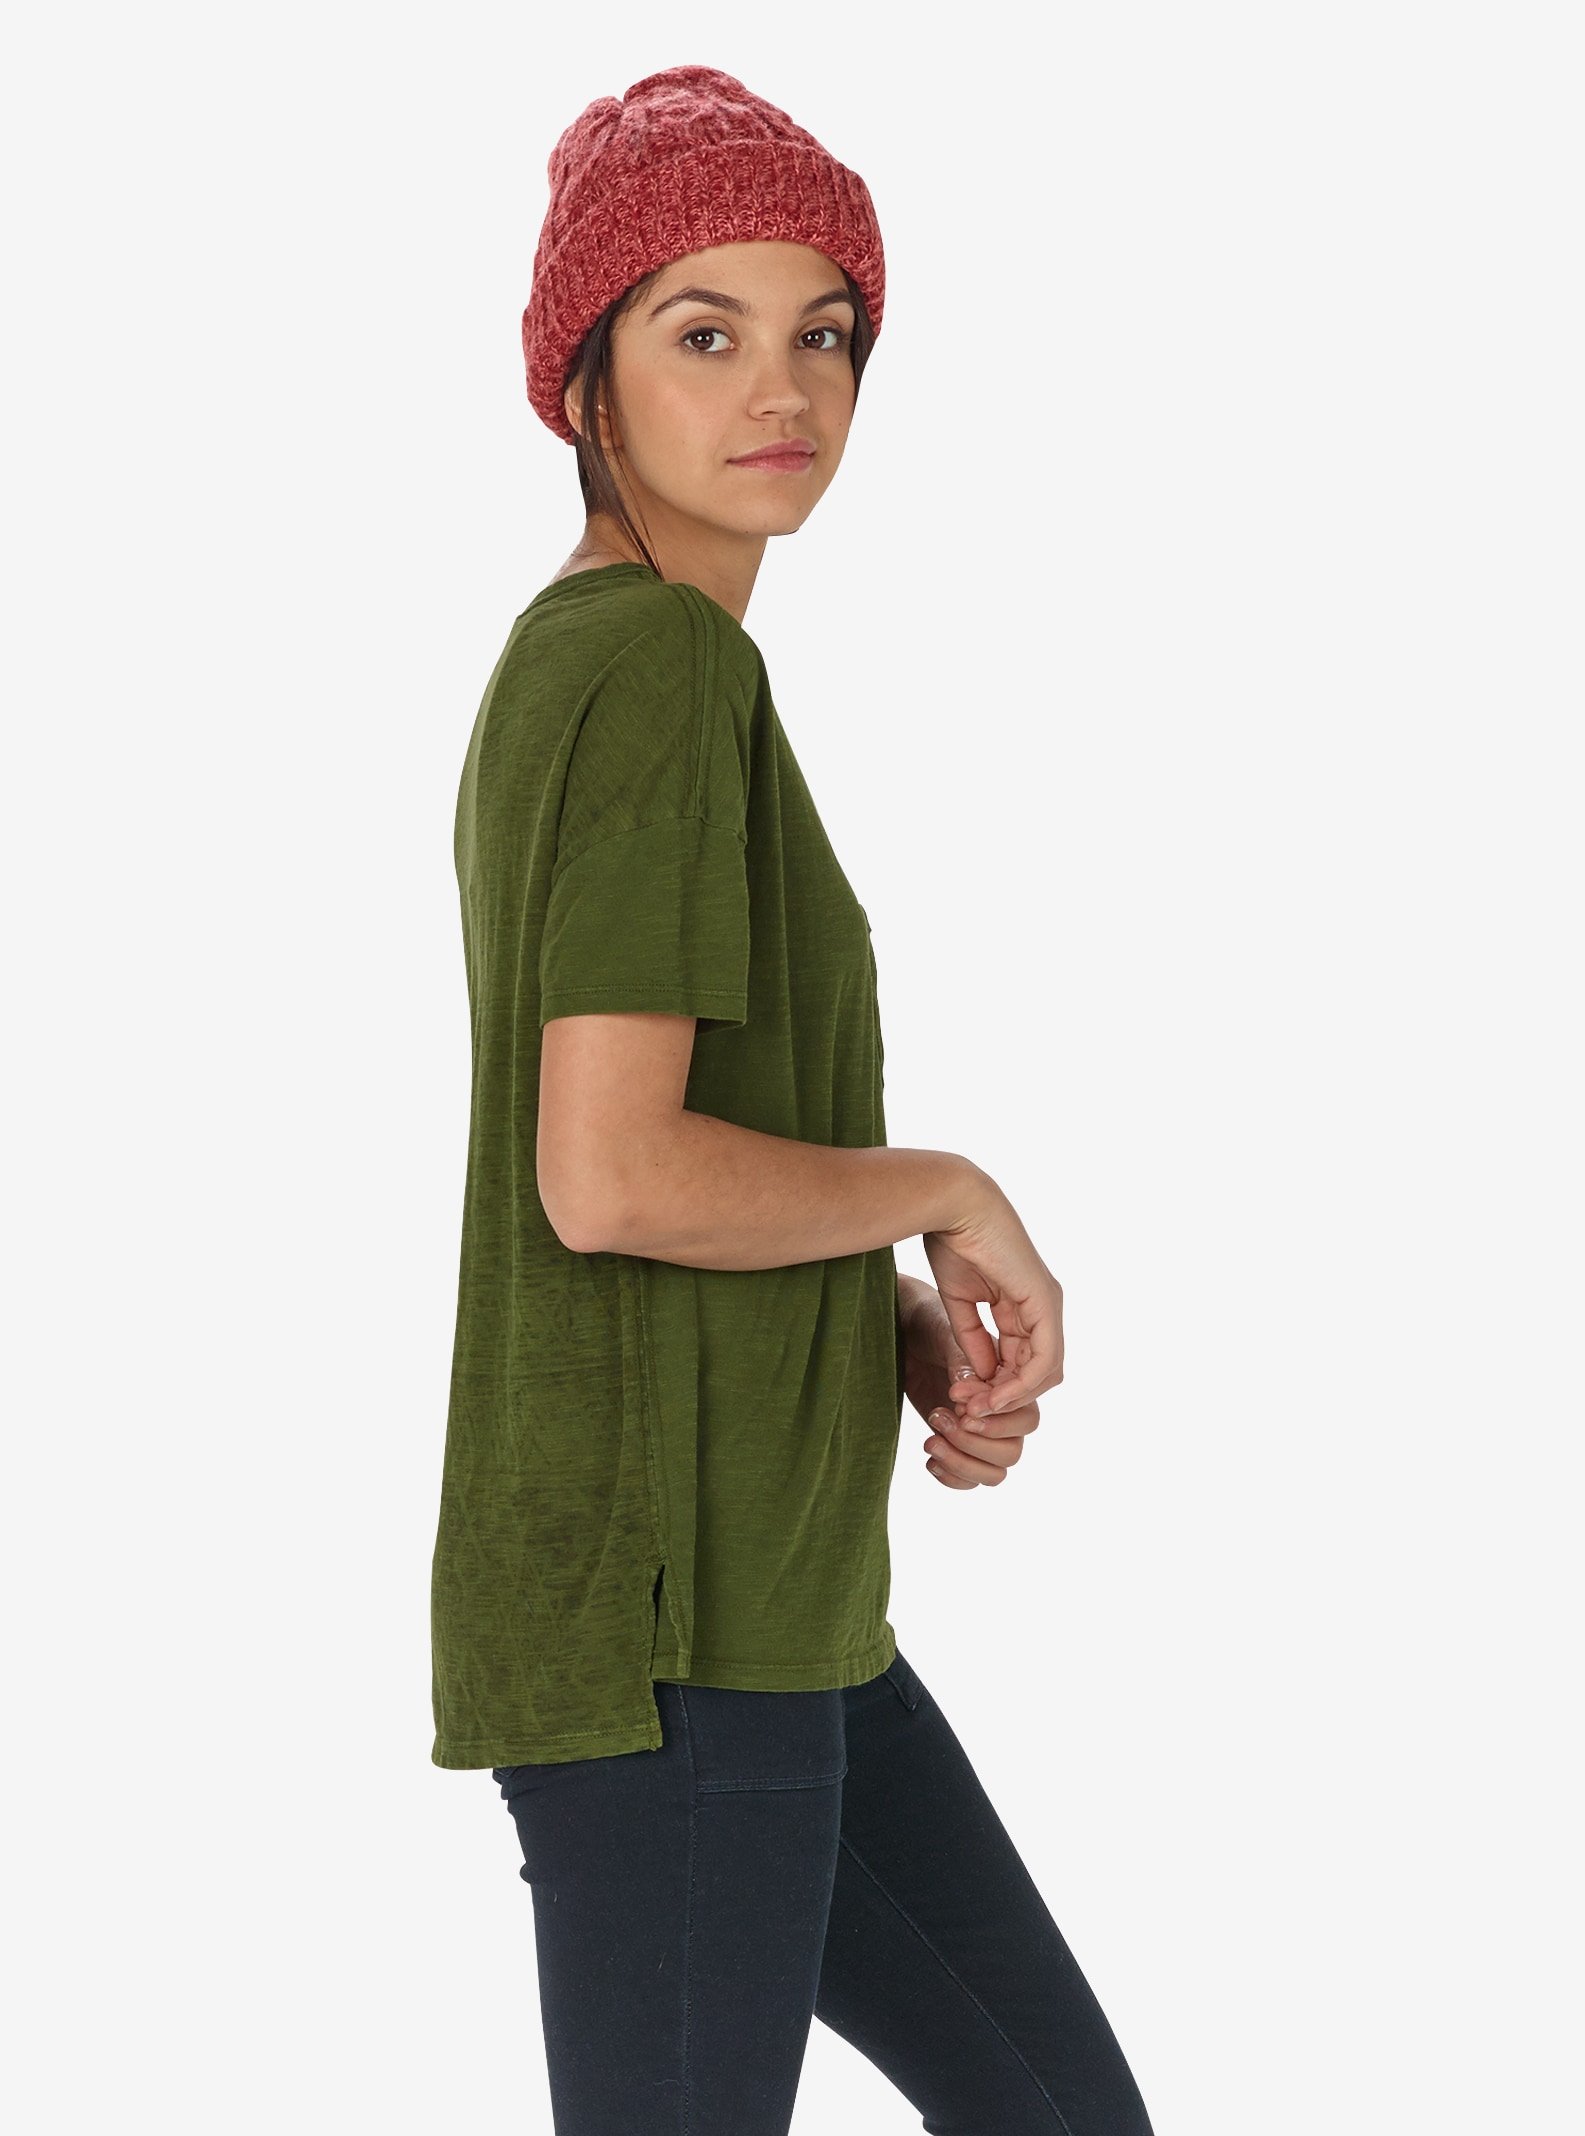 Women's Burton Shale Short Sleeve T Shirt shown in Rifle Green